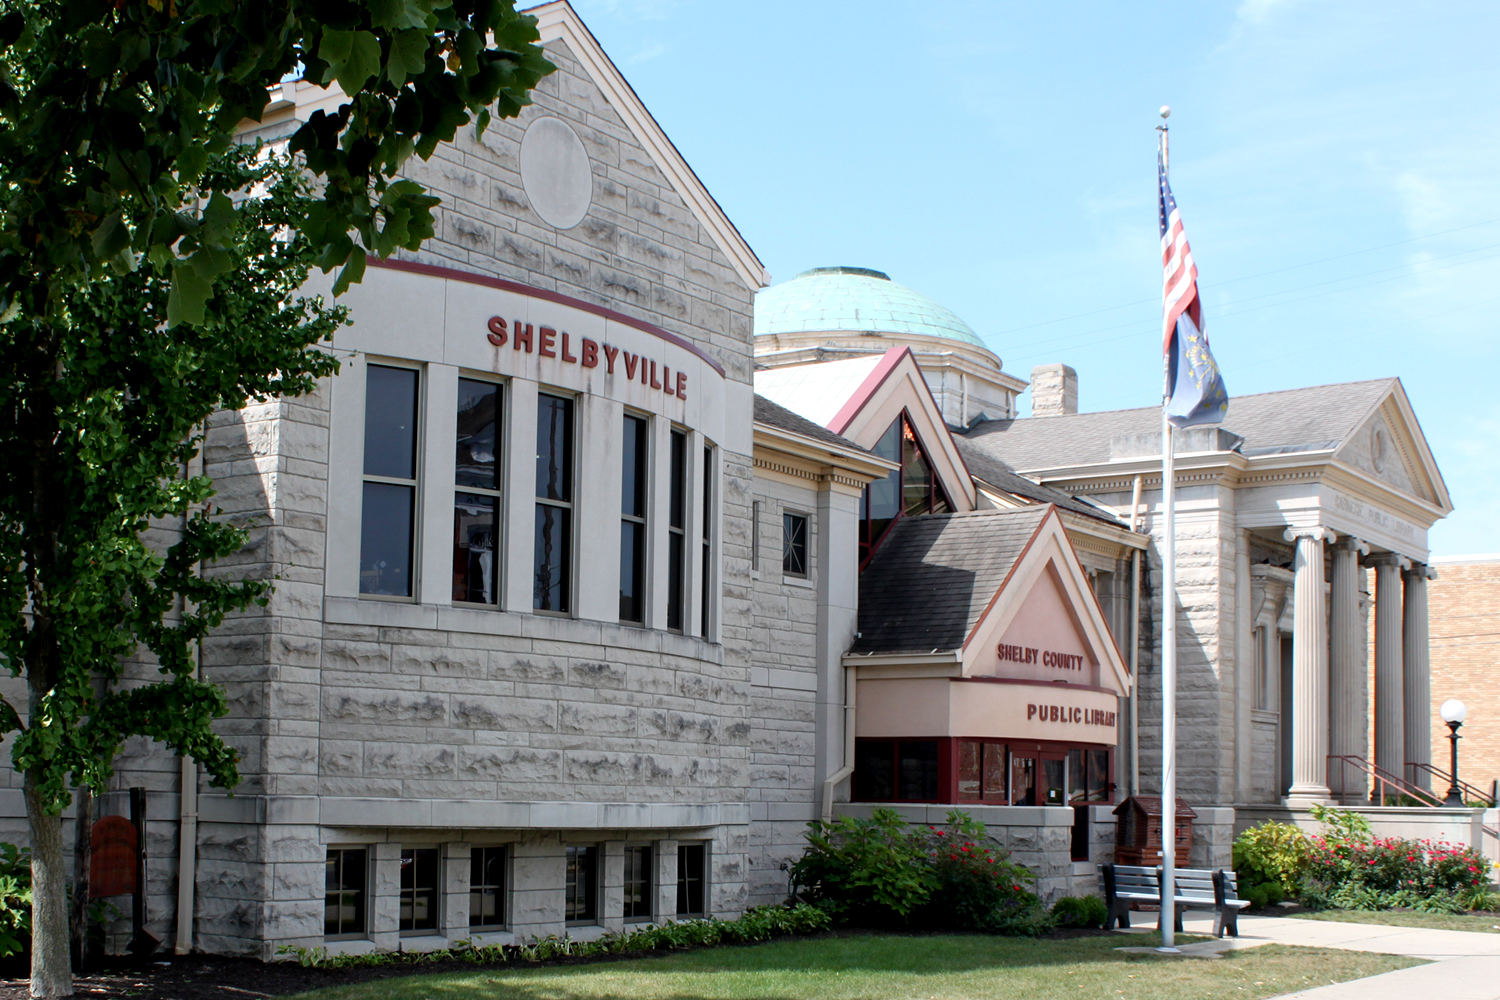 Shelby County Public Library; Shelbyville, IN